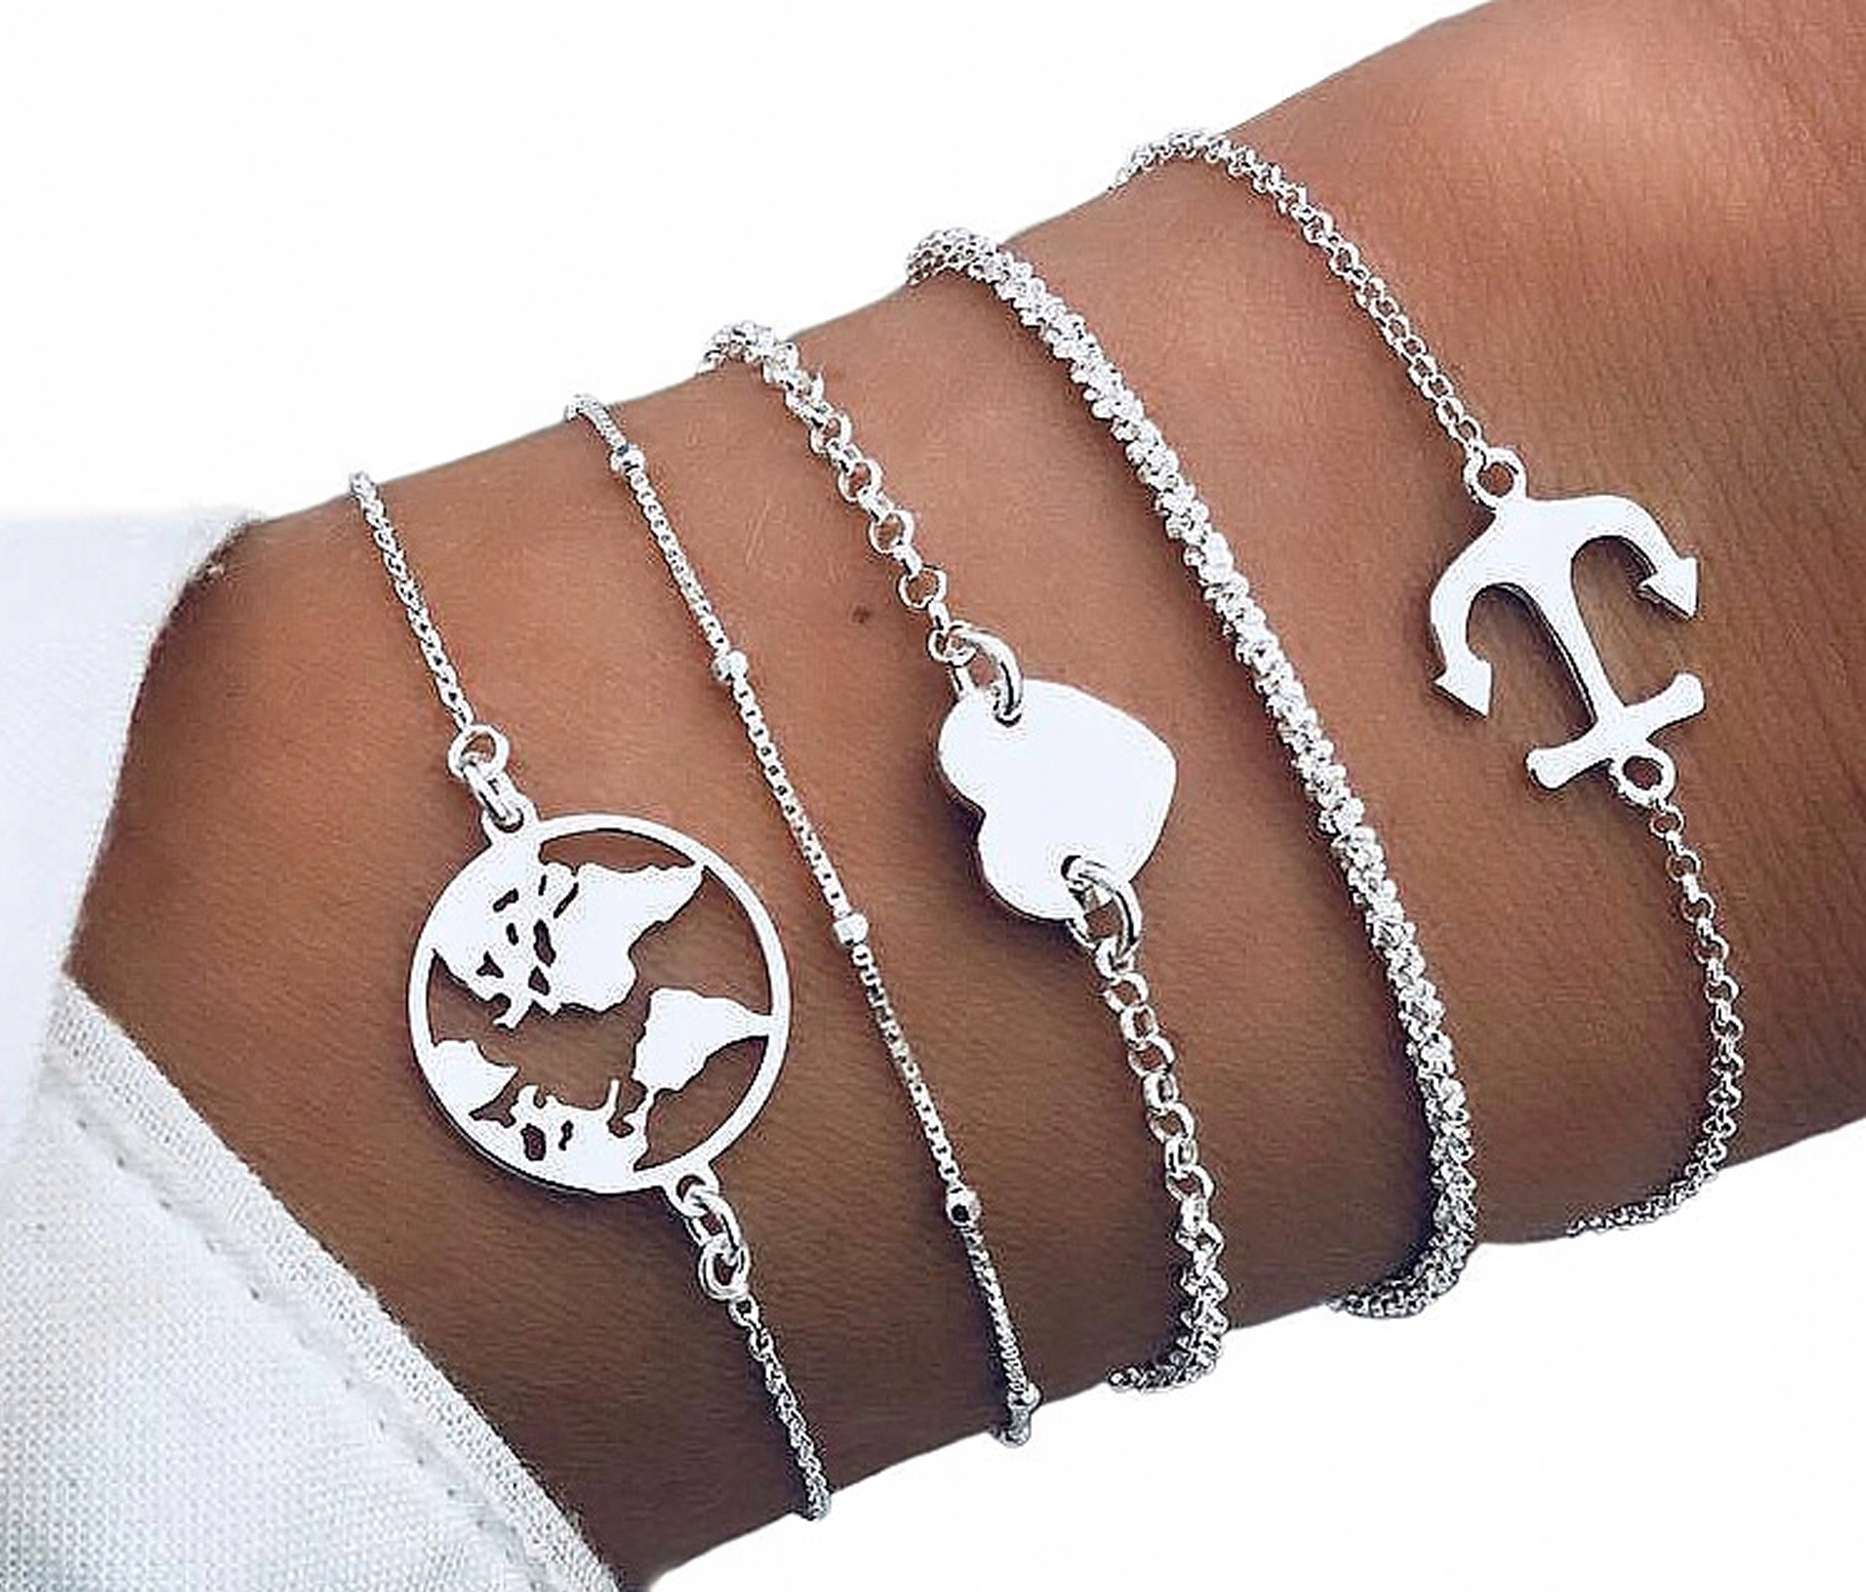 Item SET Bracelet silver rope chain heart